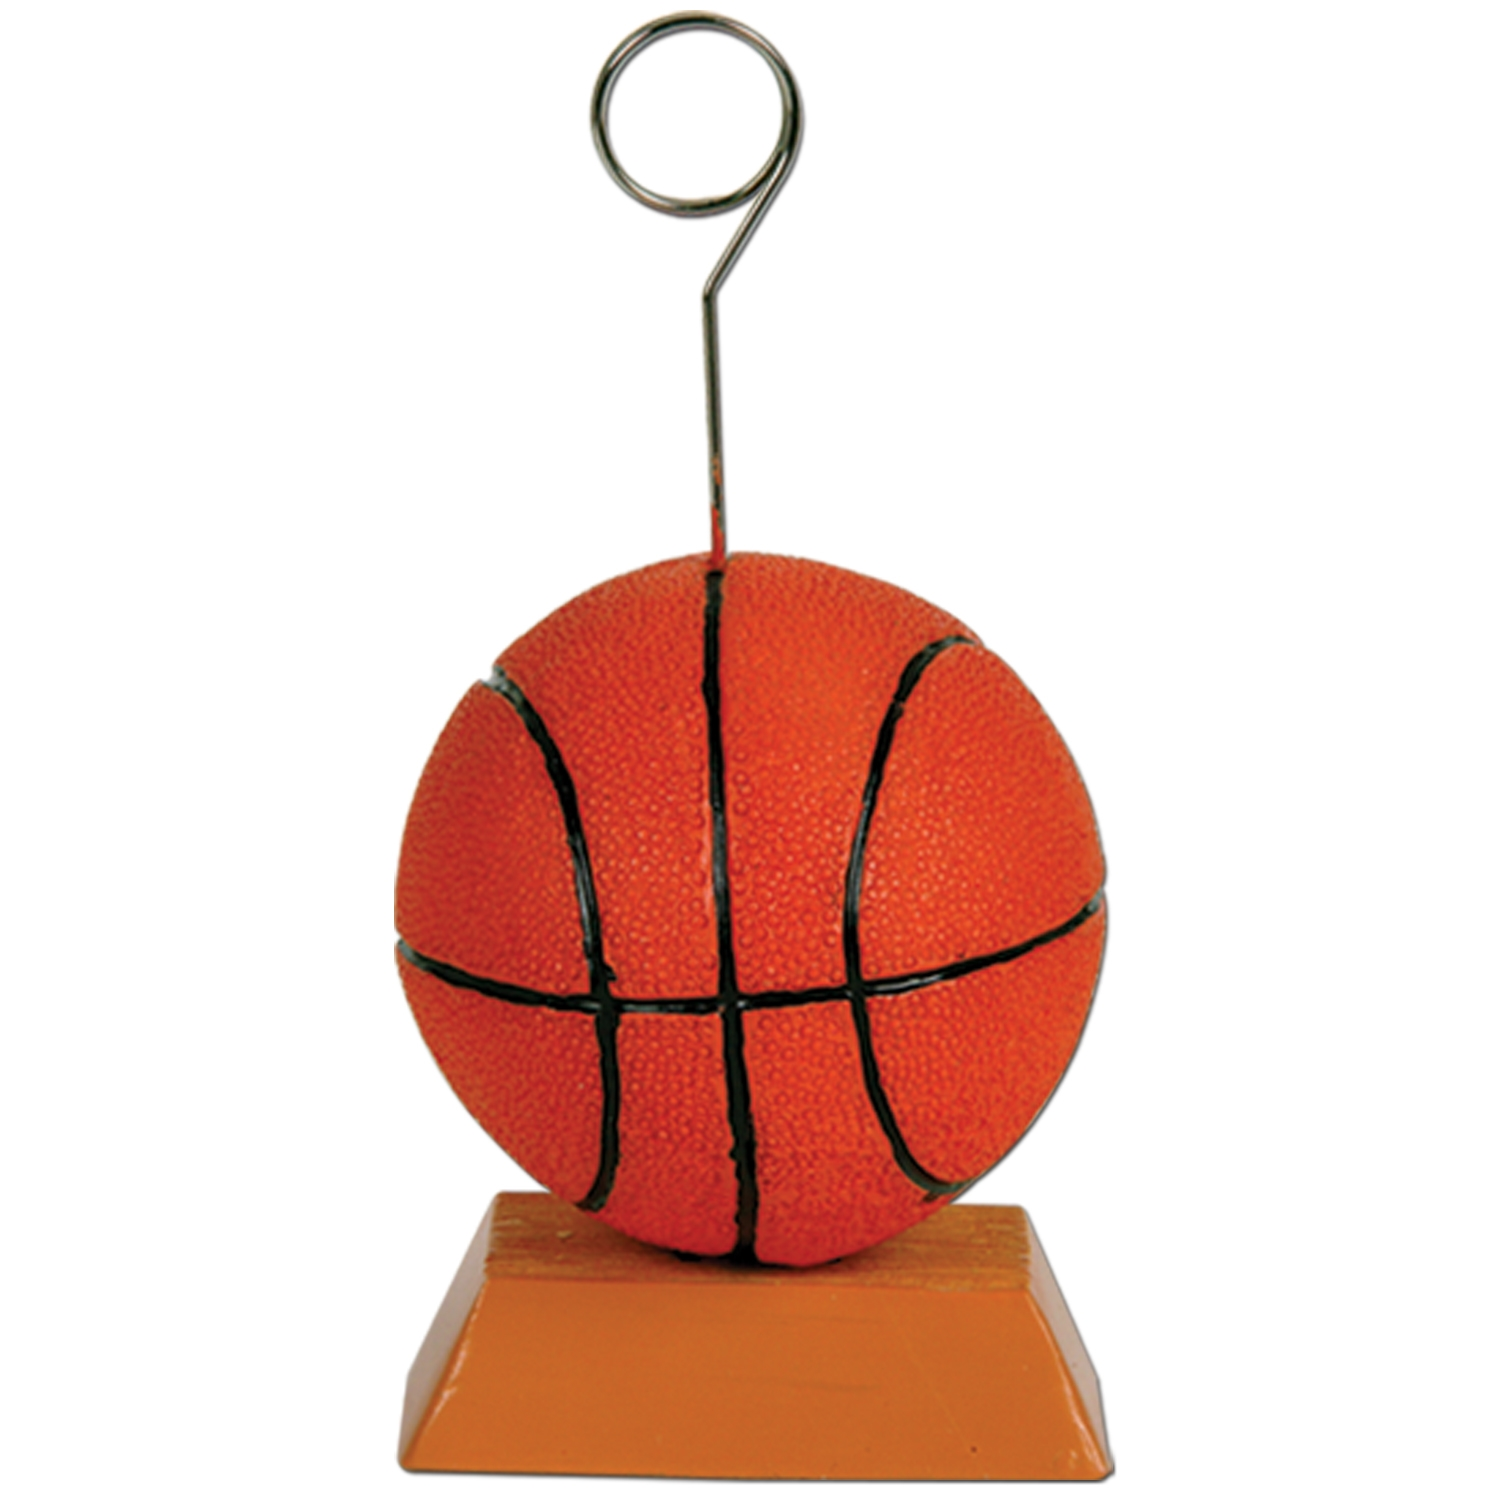 Basketball Photo/Balloon Holder 6 Oz (Pack of 6) Basketball Photo Holder, Basketball Balloon Holder, Balloon, Photo, Holder, Balloon Weight, Photo Holder, Centerpieces, Sports Decor, Party Favors, Wholesale party supplies, Inexpensive party decorations, Basketball, Sports Banquet